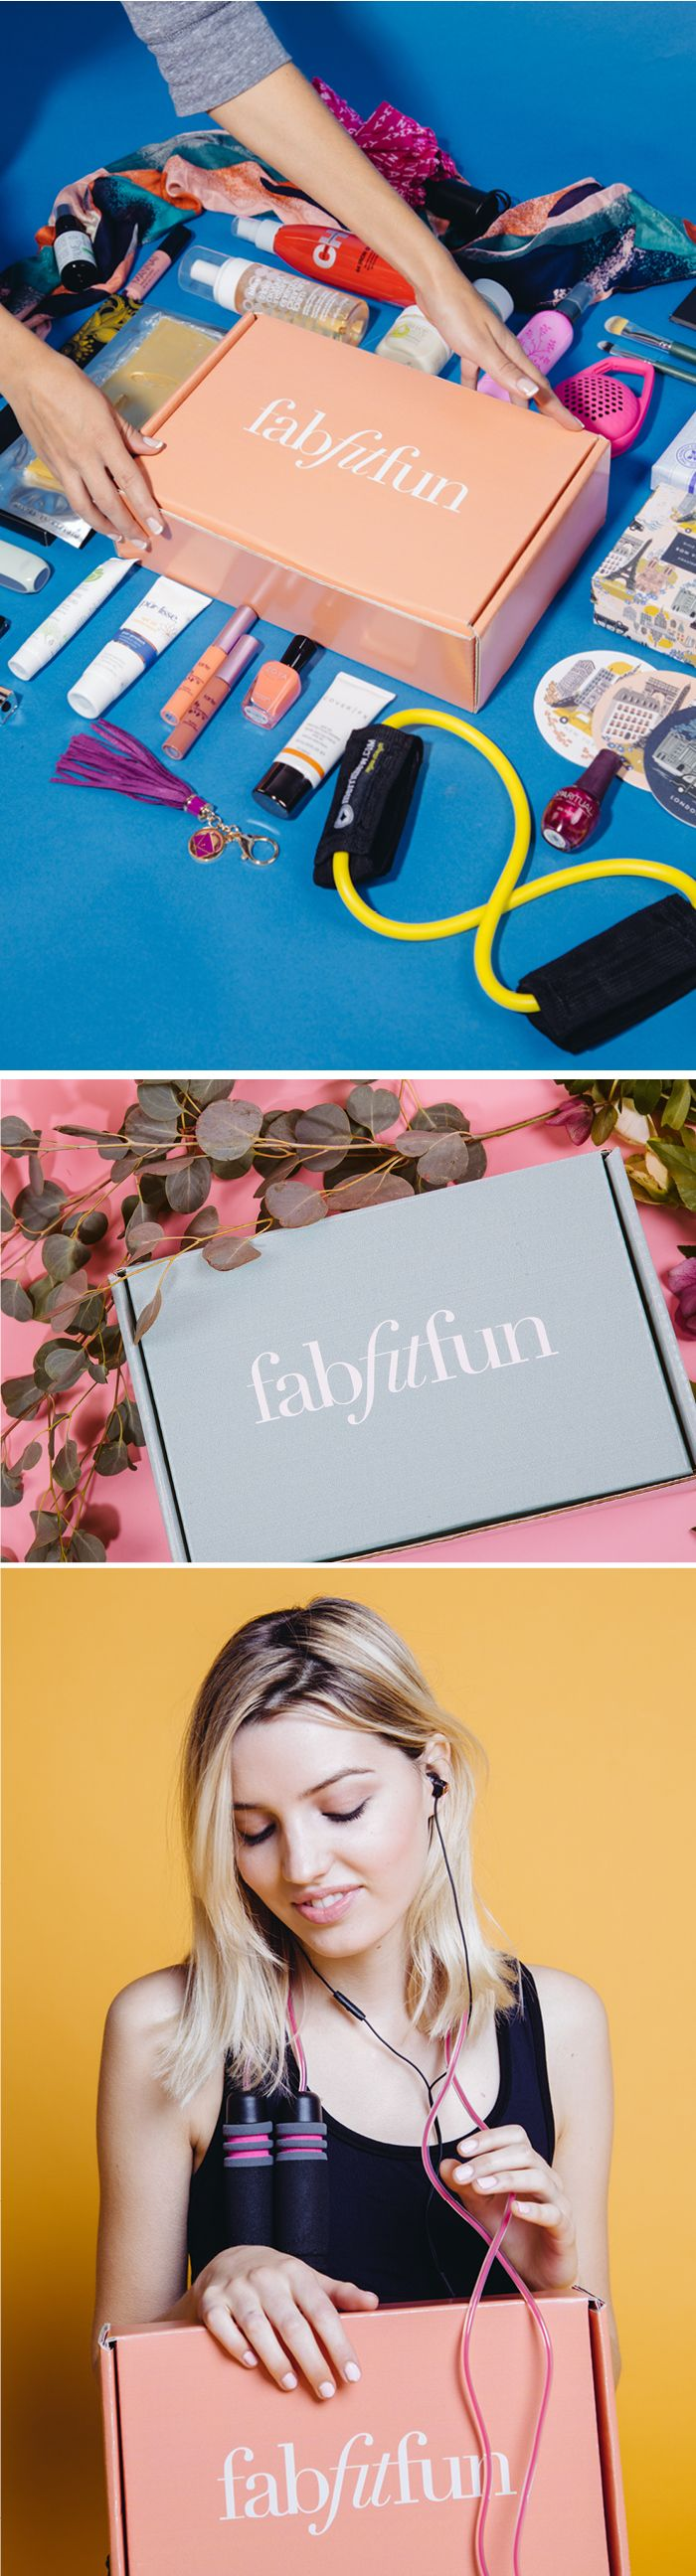 Subscribe to healthy & happy change in 2016 with FabFitFun. Each season we send out a box stuffed with premium, full-size beauty, fashion, and fitness products. It's like a big gift box delivered to your door. Try it out and get your first box for just $39.99 with code PINTEREST10